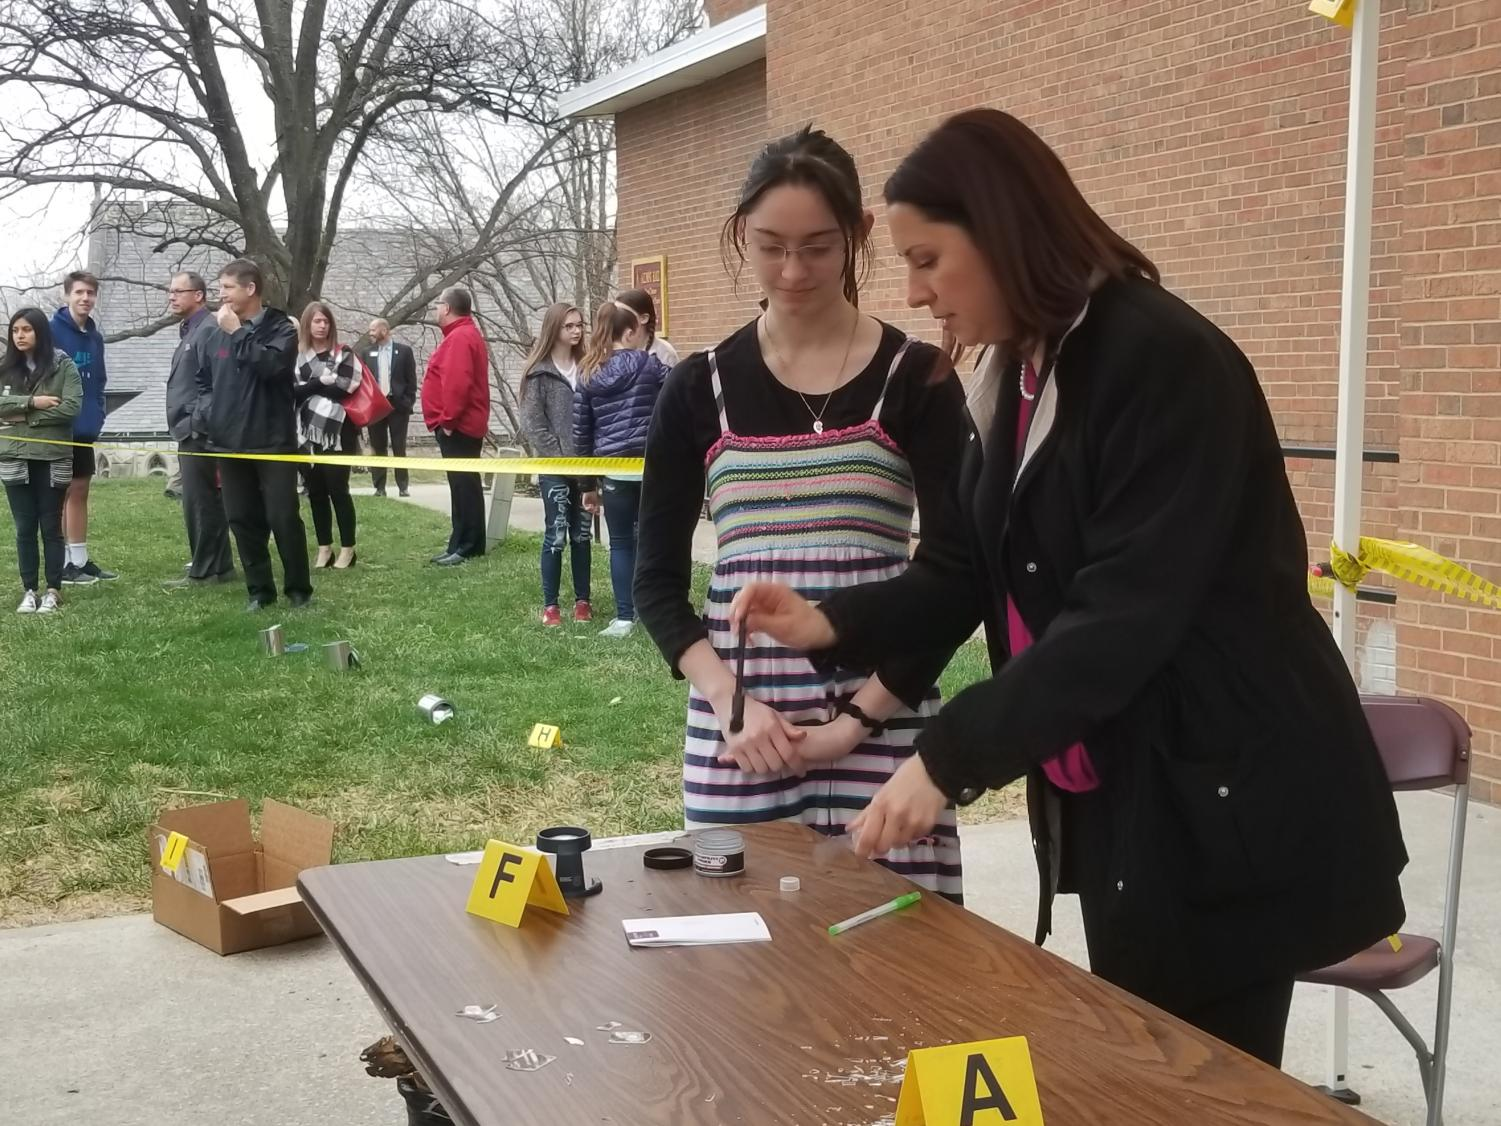 Tatiana Trejos demonstrating how to dust for fingerprints at a crime scene